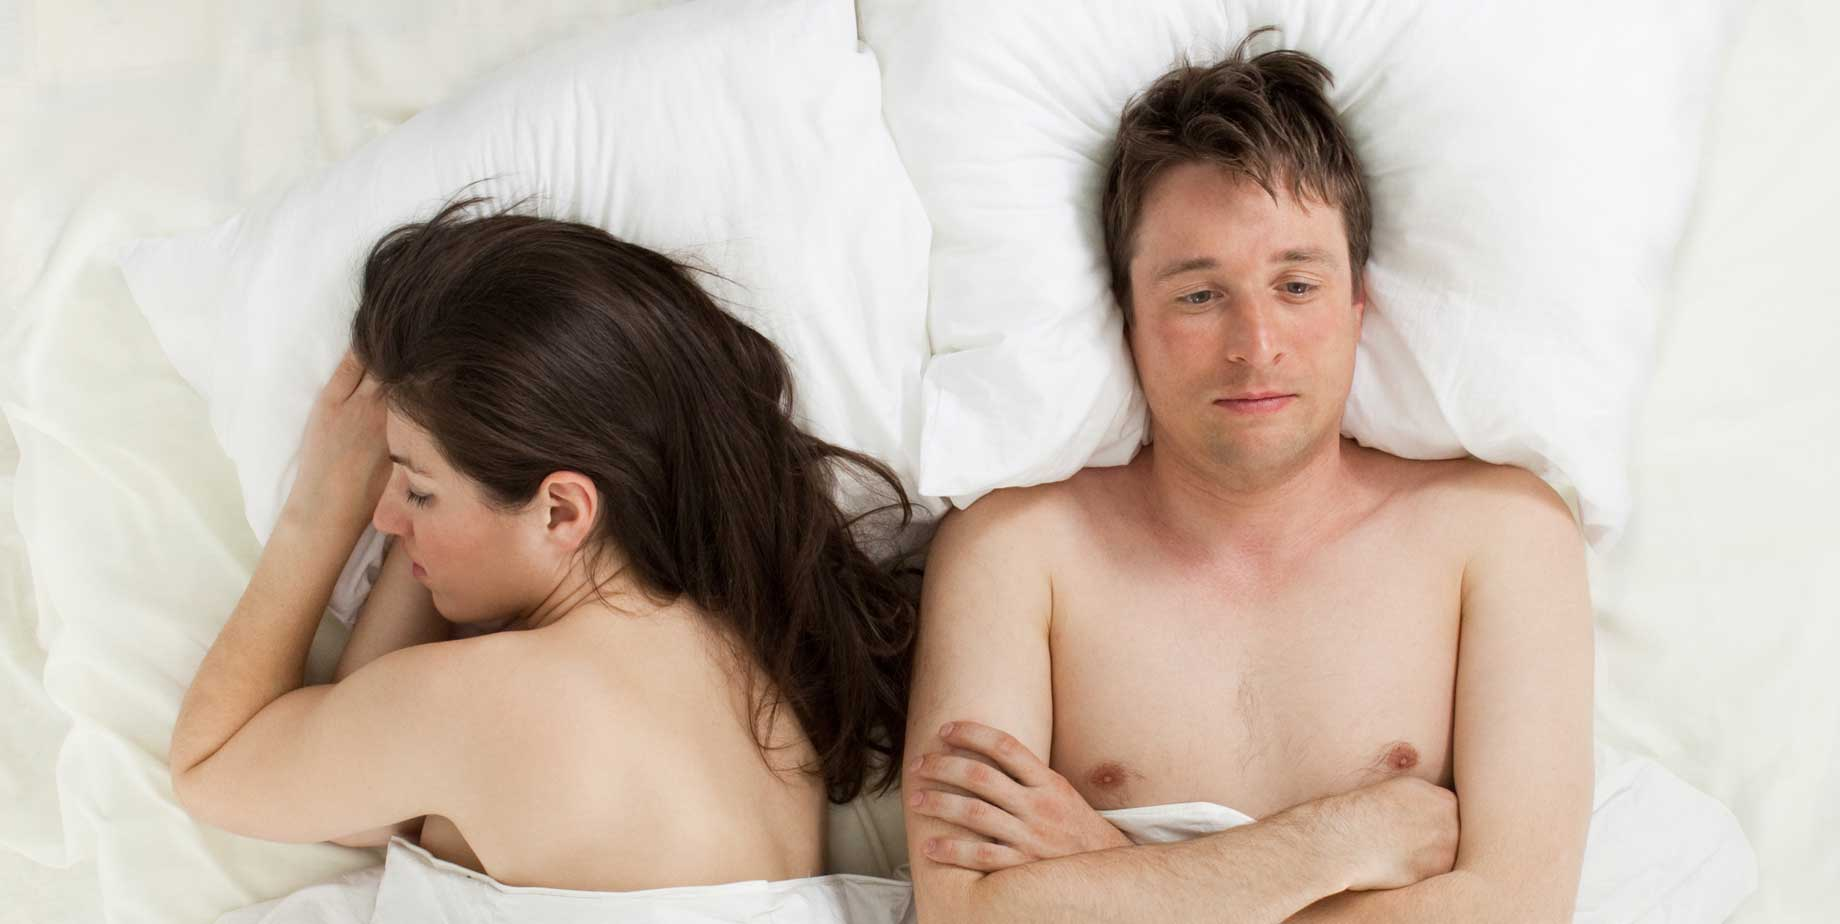 unhappy man in bed with woman